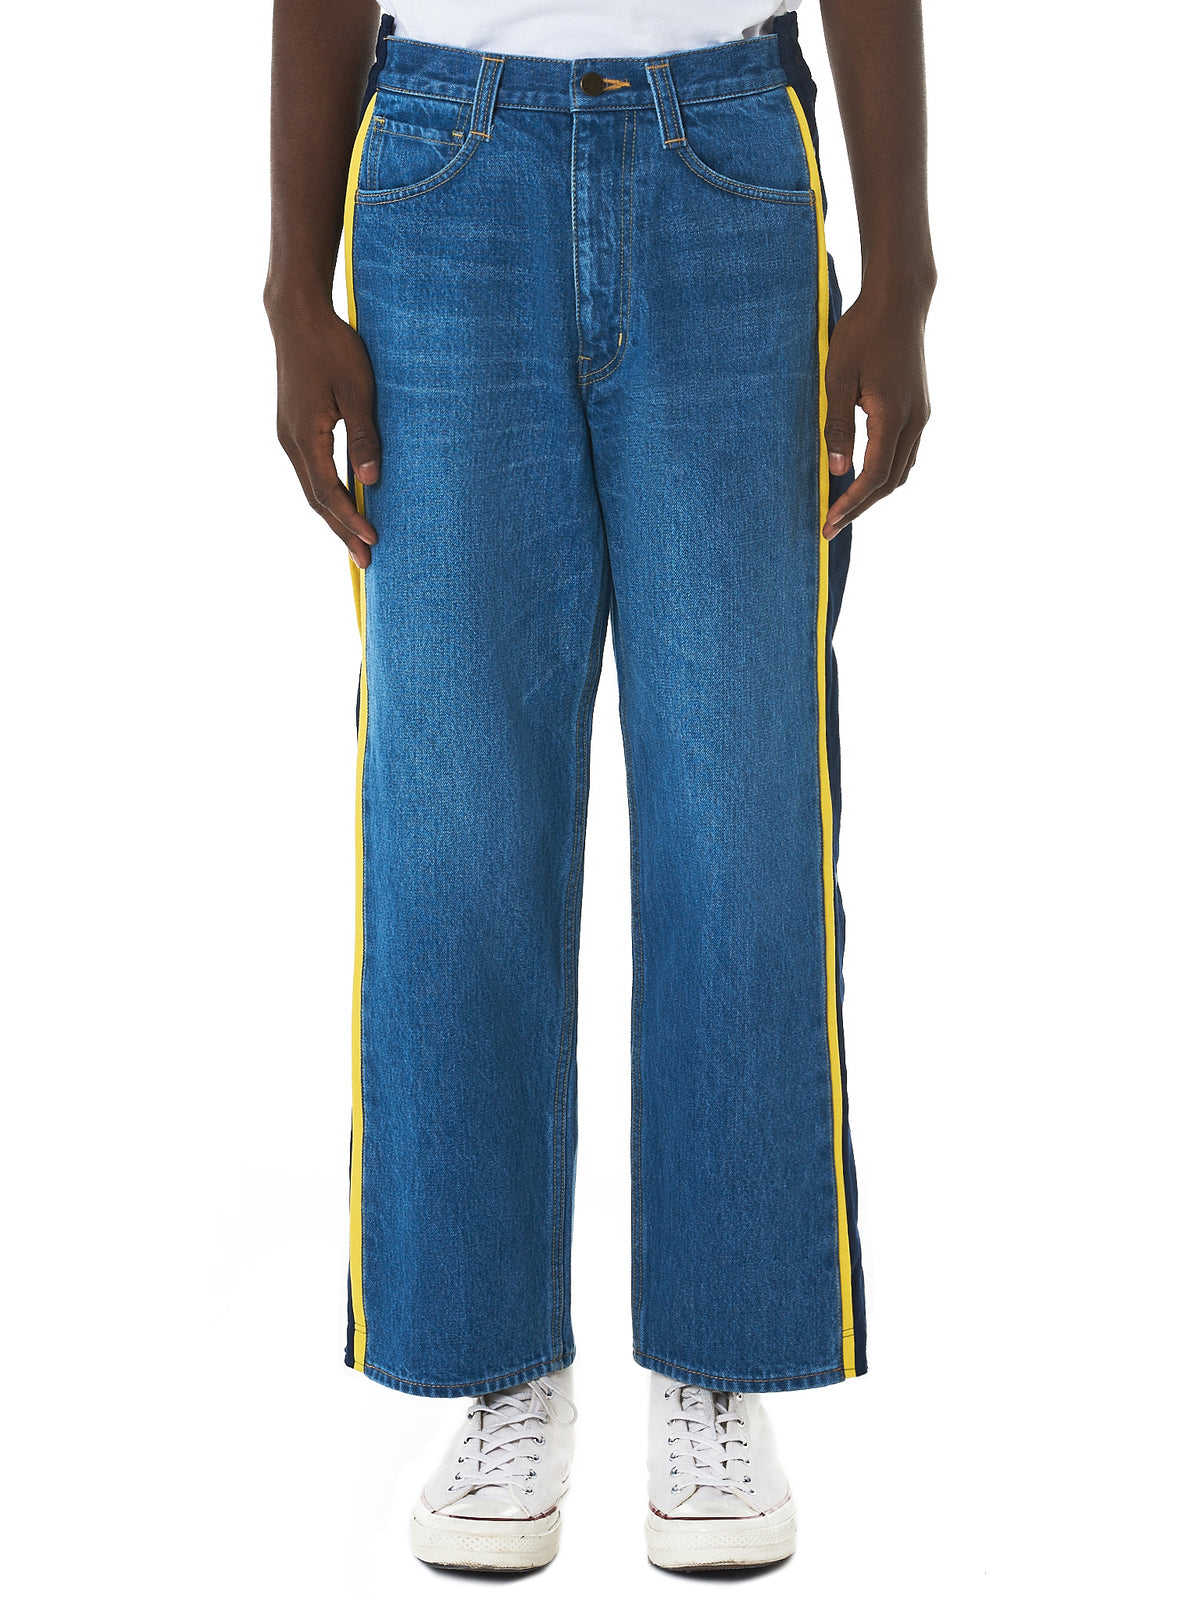 Facetasm Denim Pants - Hlorenzo Front